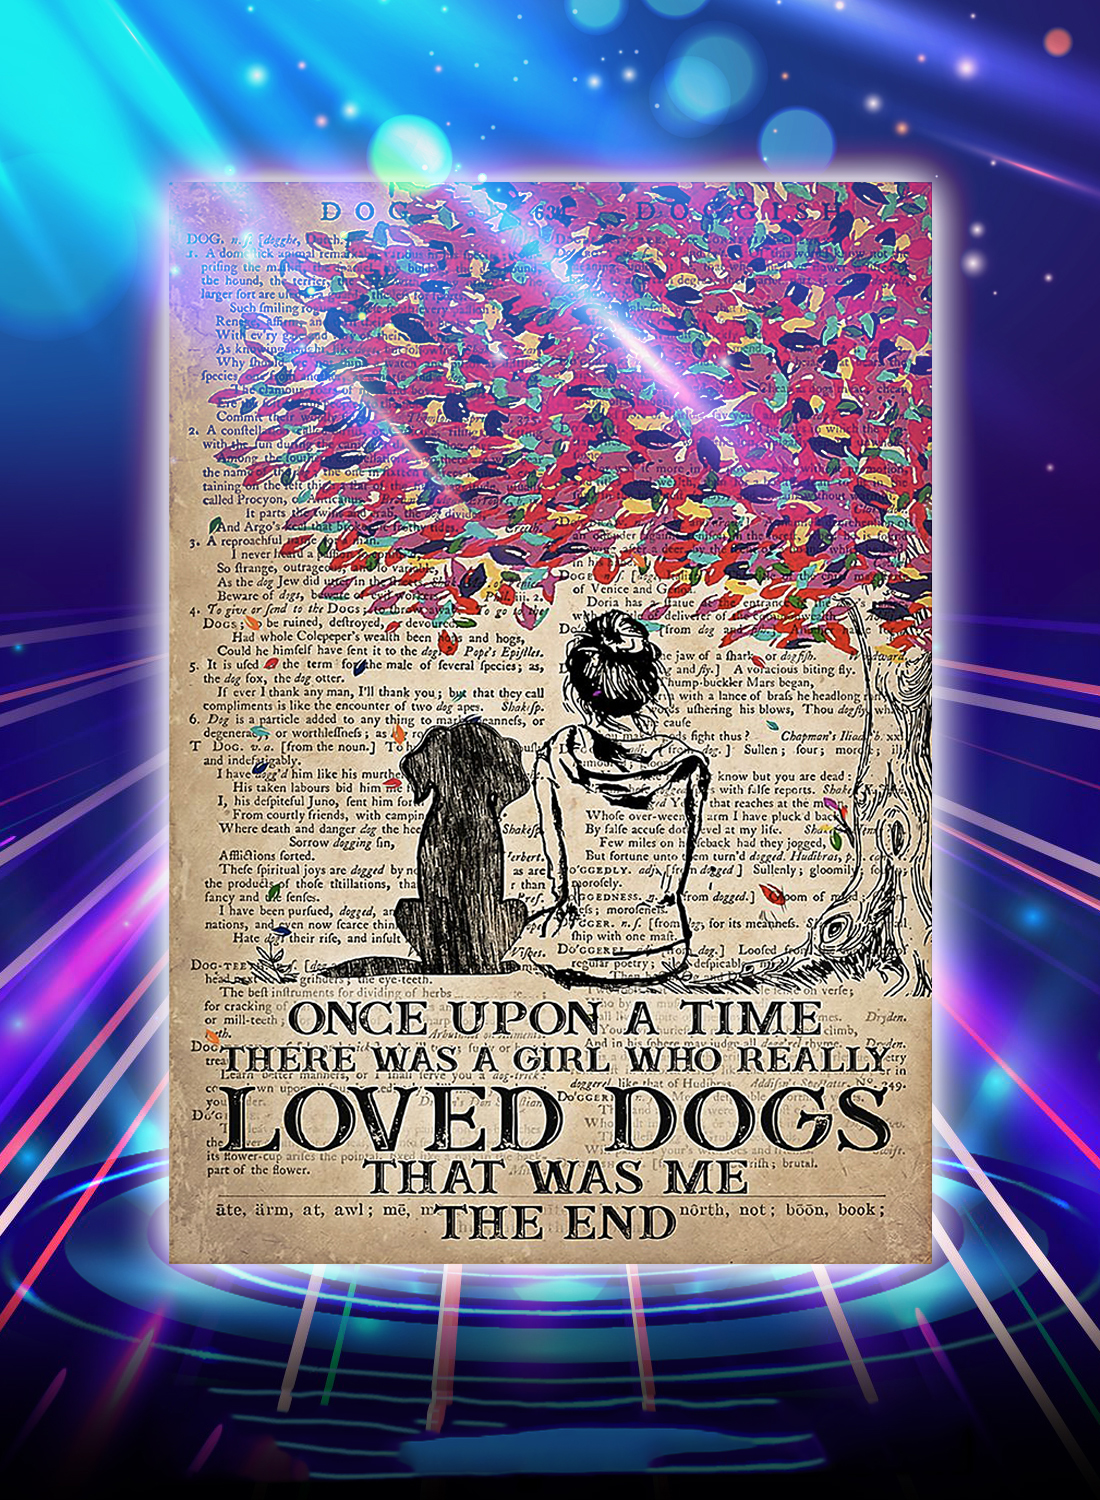 Once upon a time there was a girl who really loved dogs poster